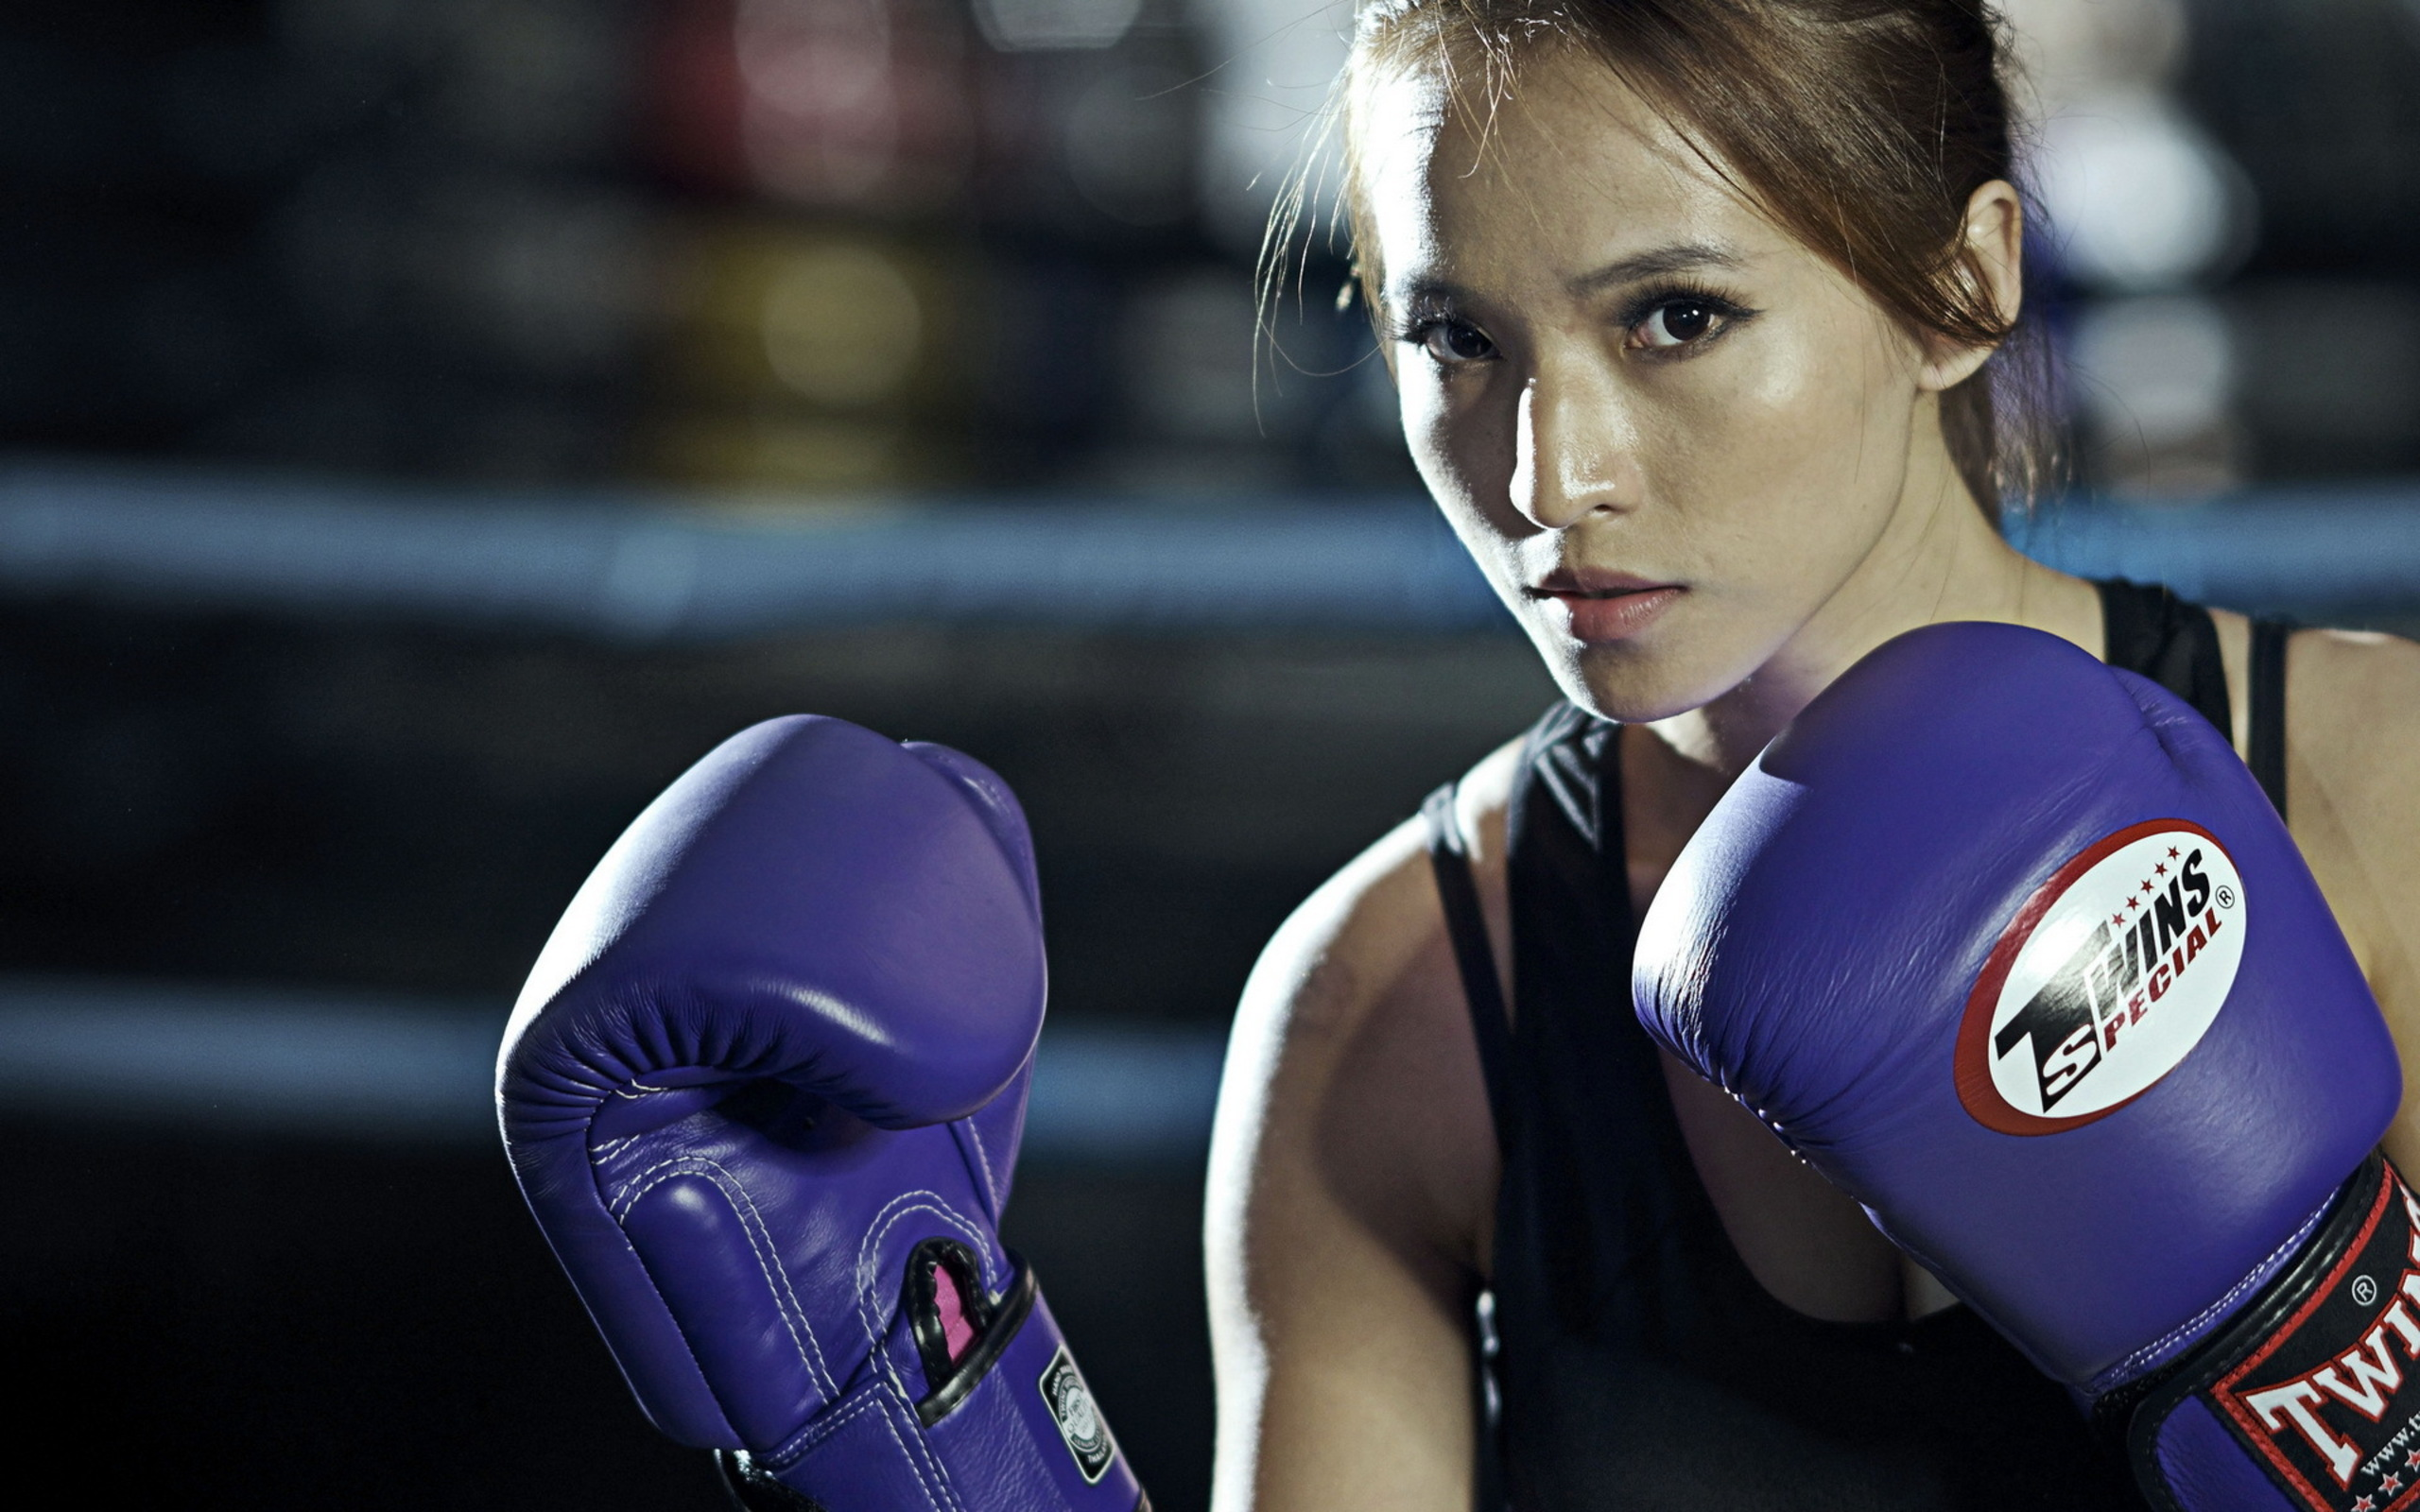 Gorgeous girls boxing — photo 9